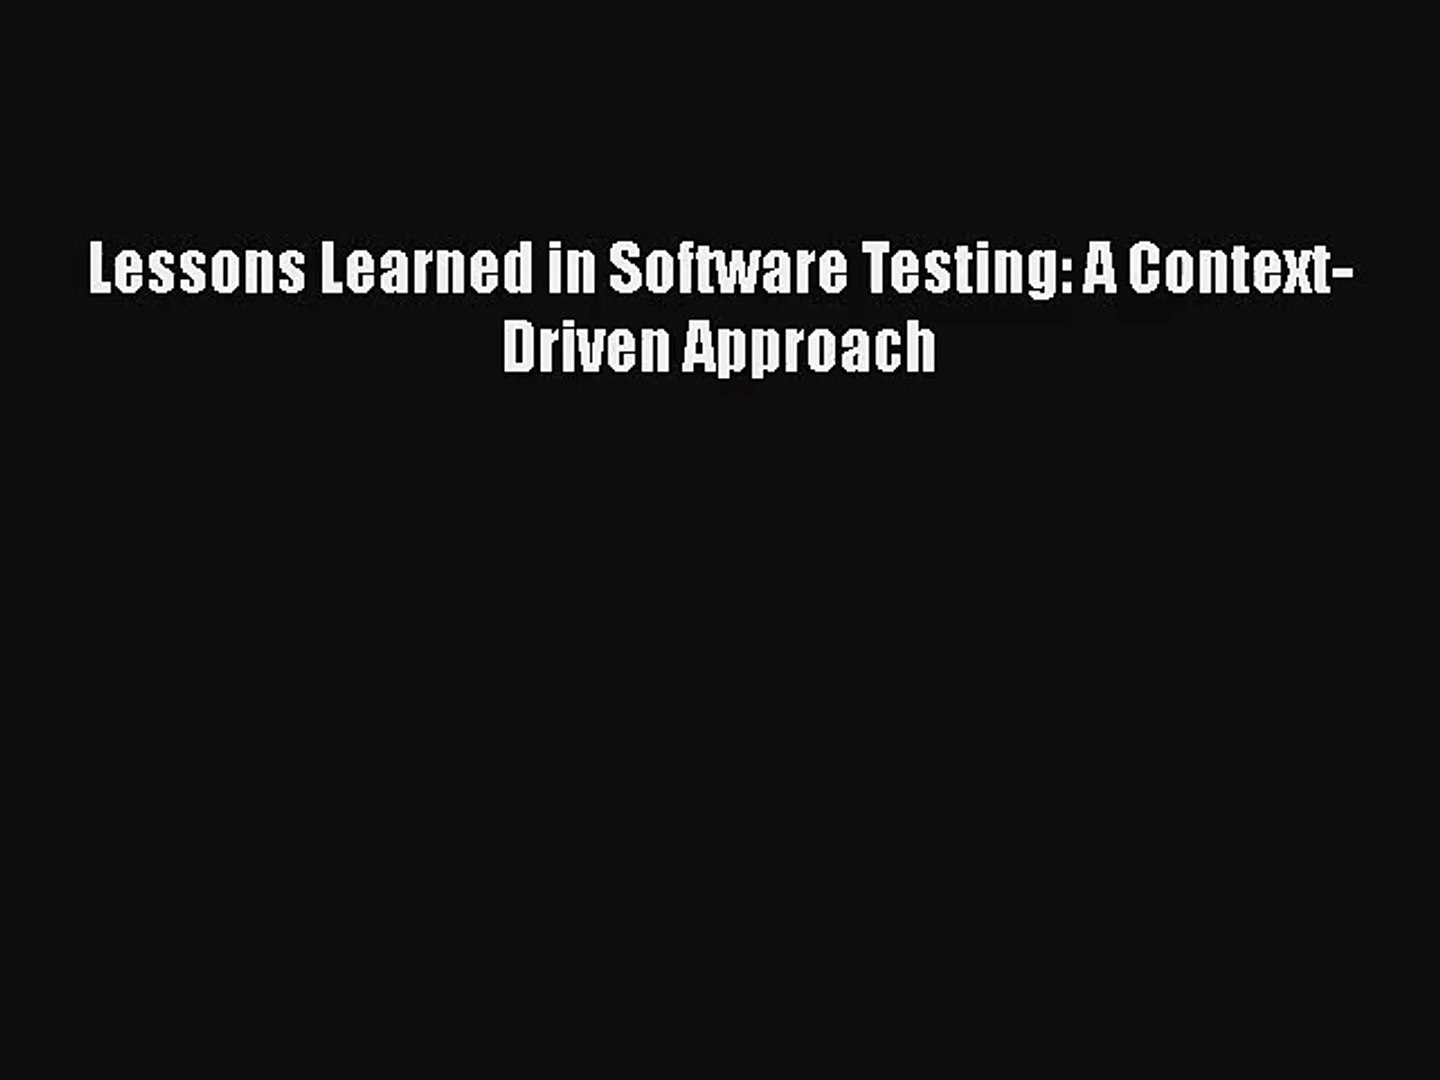 Lessons Learned in Software Testing A Context-Driven Approach